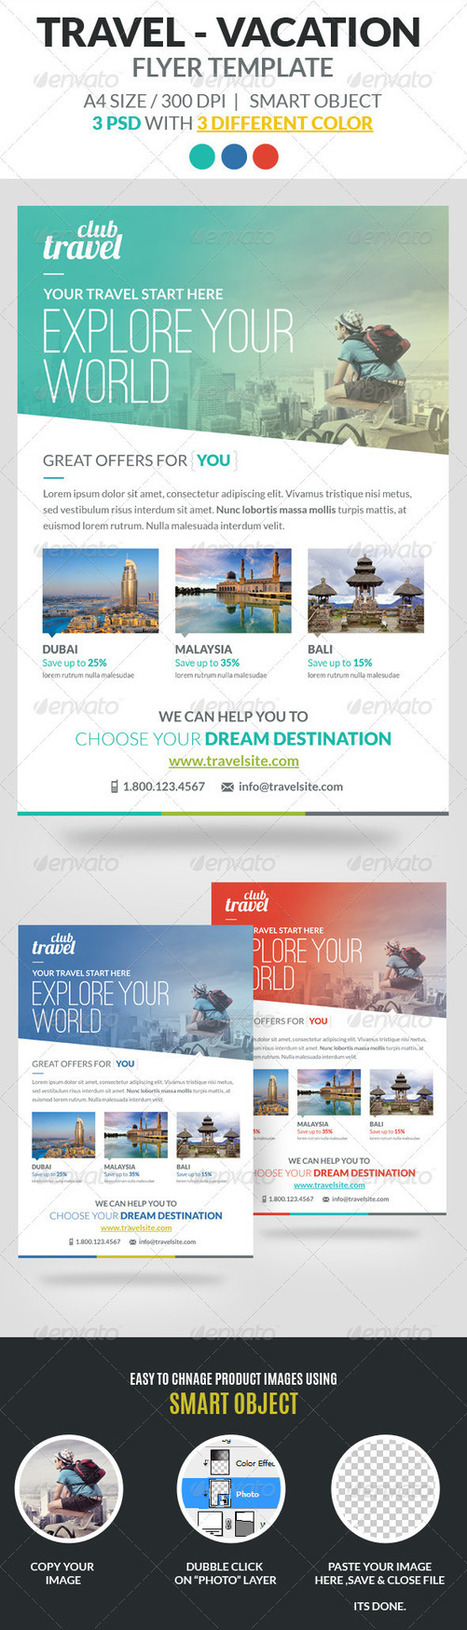 Travel - Vacation Flyer Template (Holidays) | Travel | Scoop.it